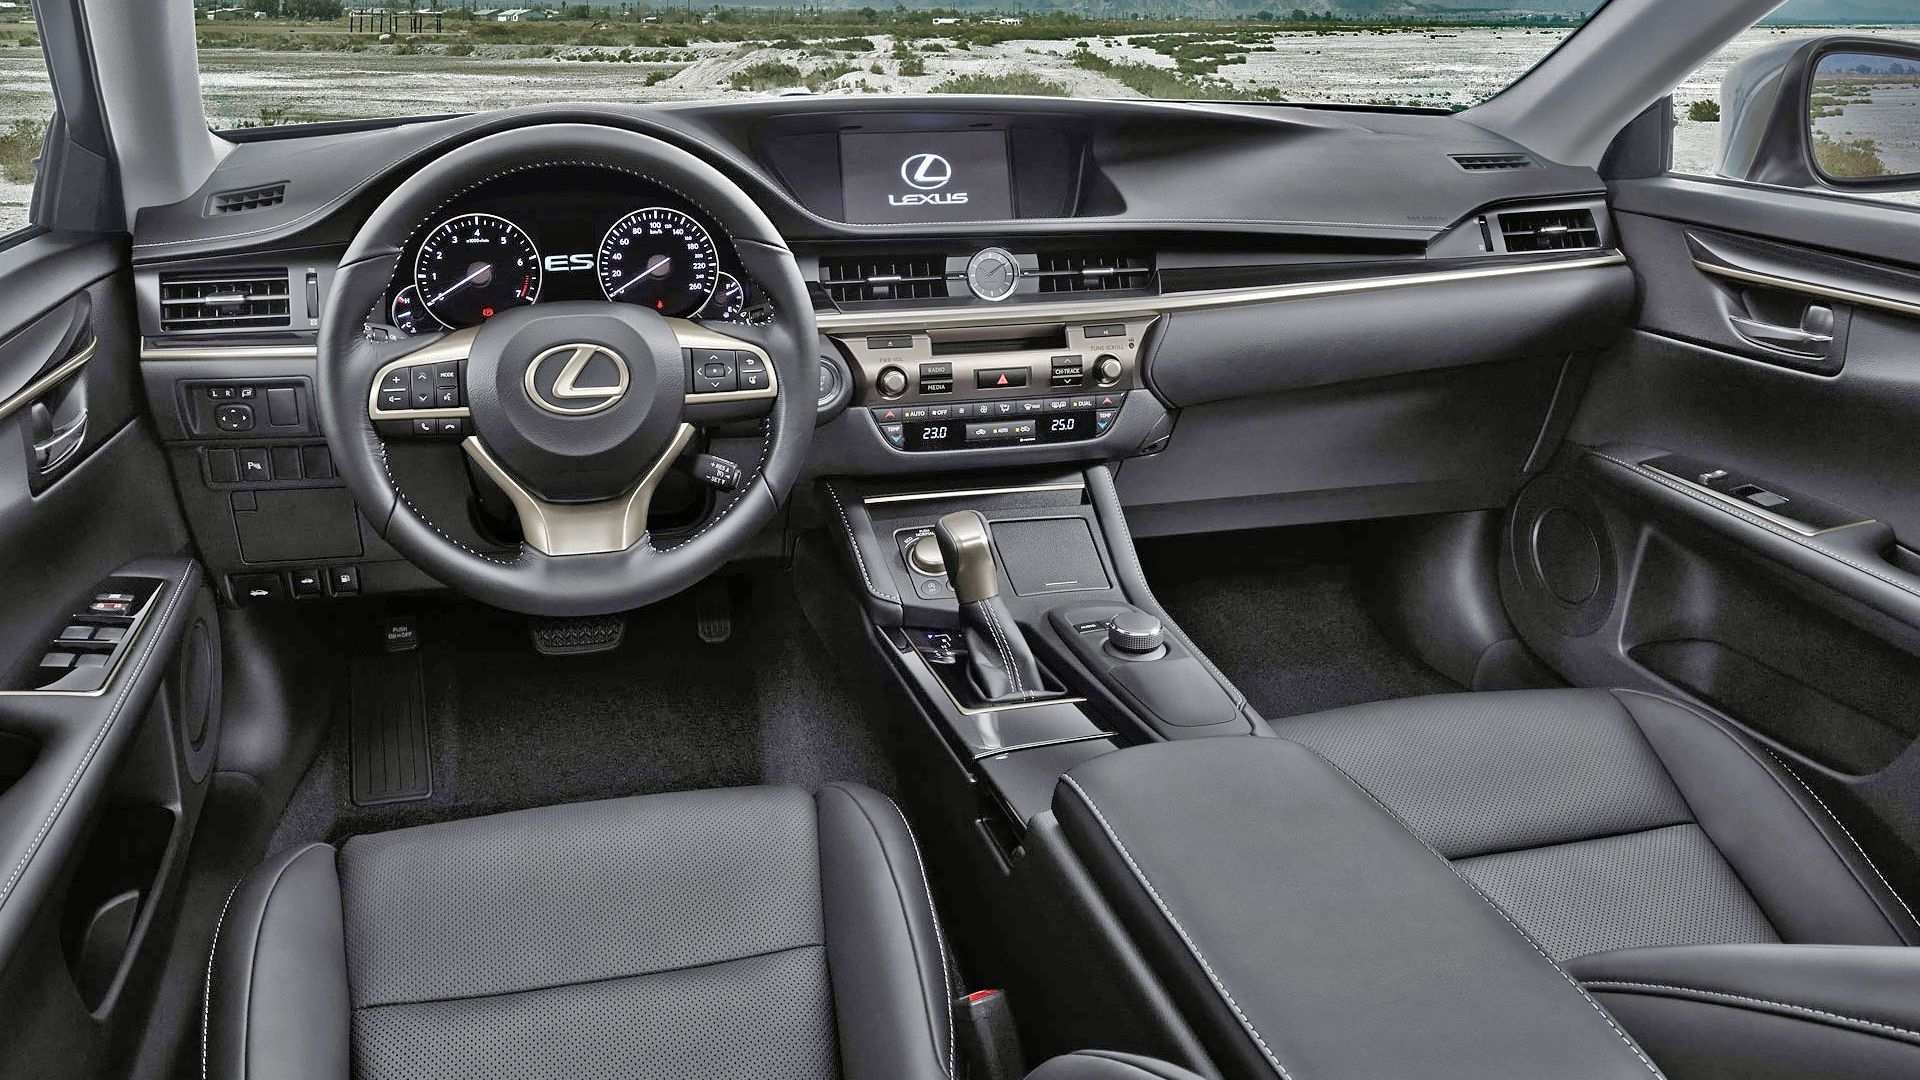 97 A 2019 Lexus IS 250 Wallpaper